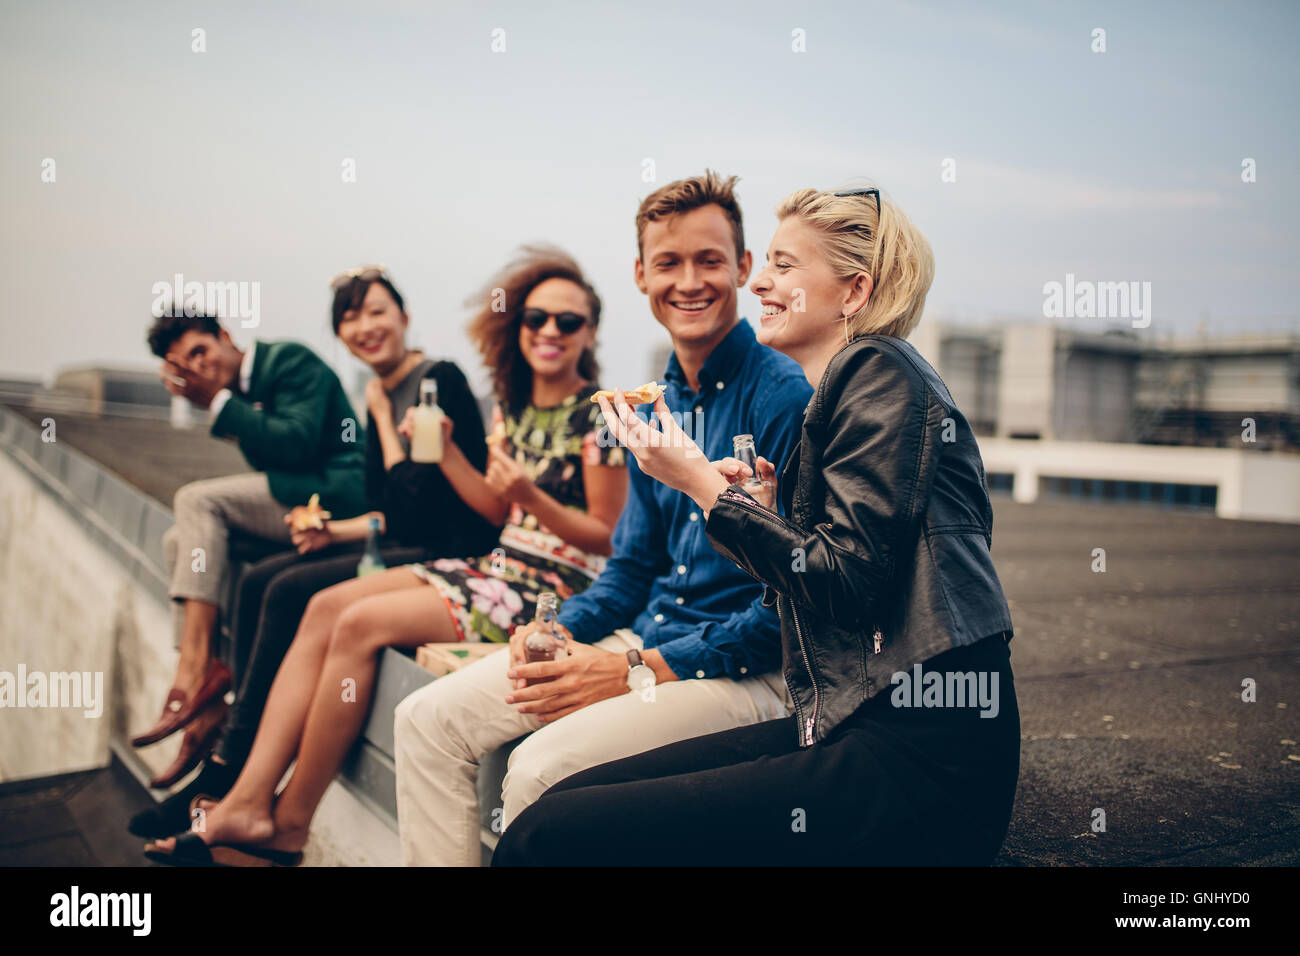 Shot of young people partying on terrace. Multiracial friends sitting together on rooftop having drinks and eating. - Stock Image